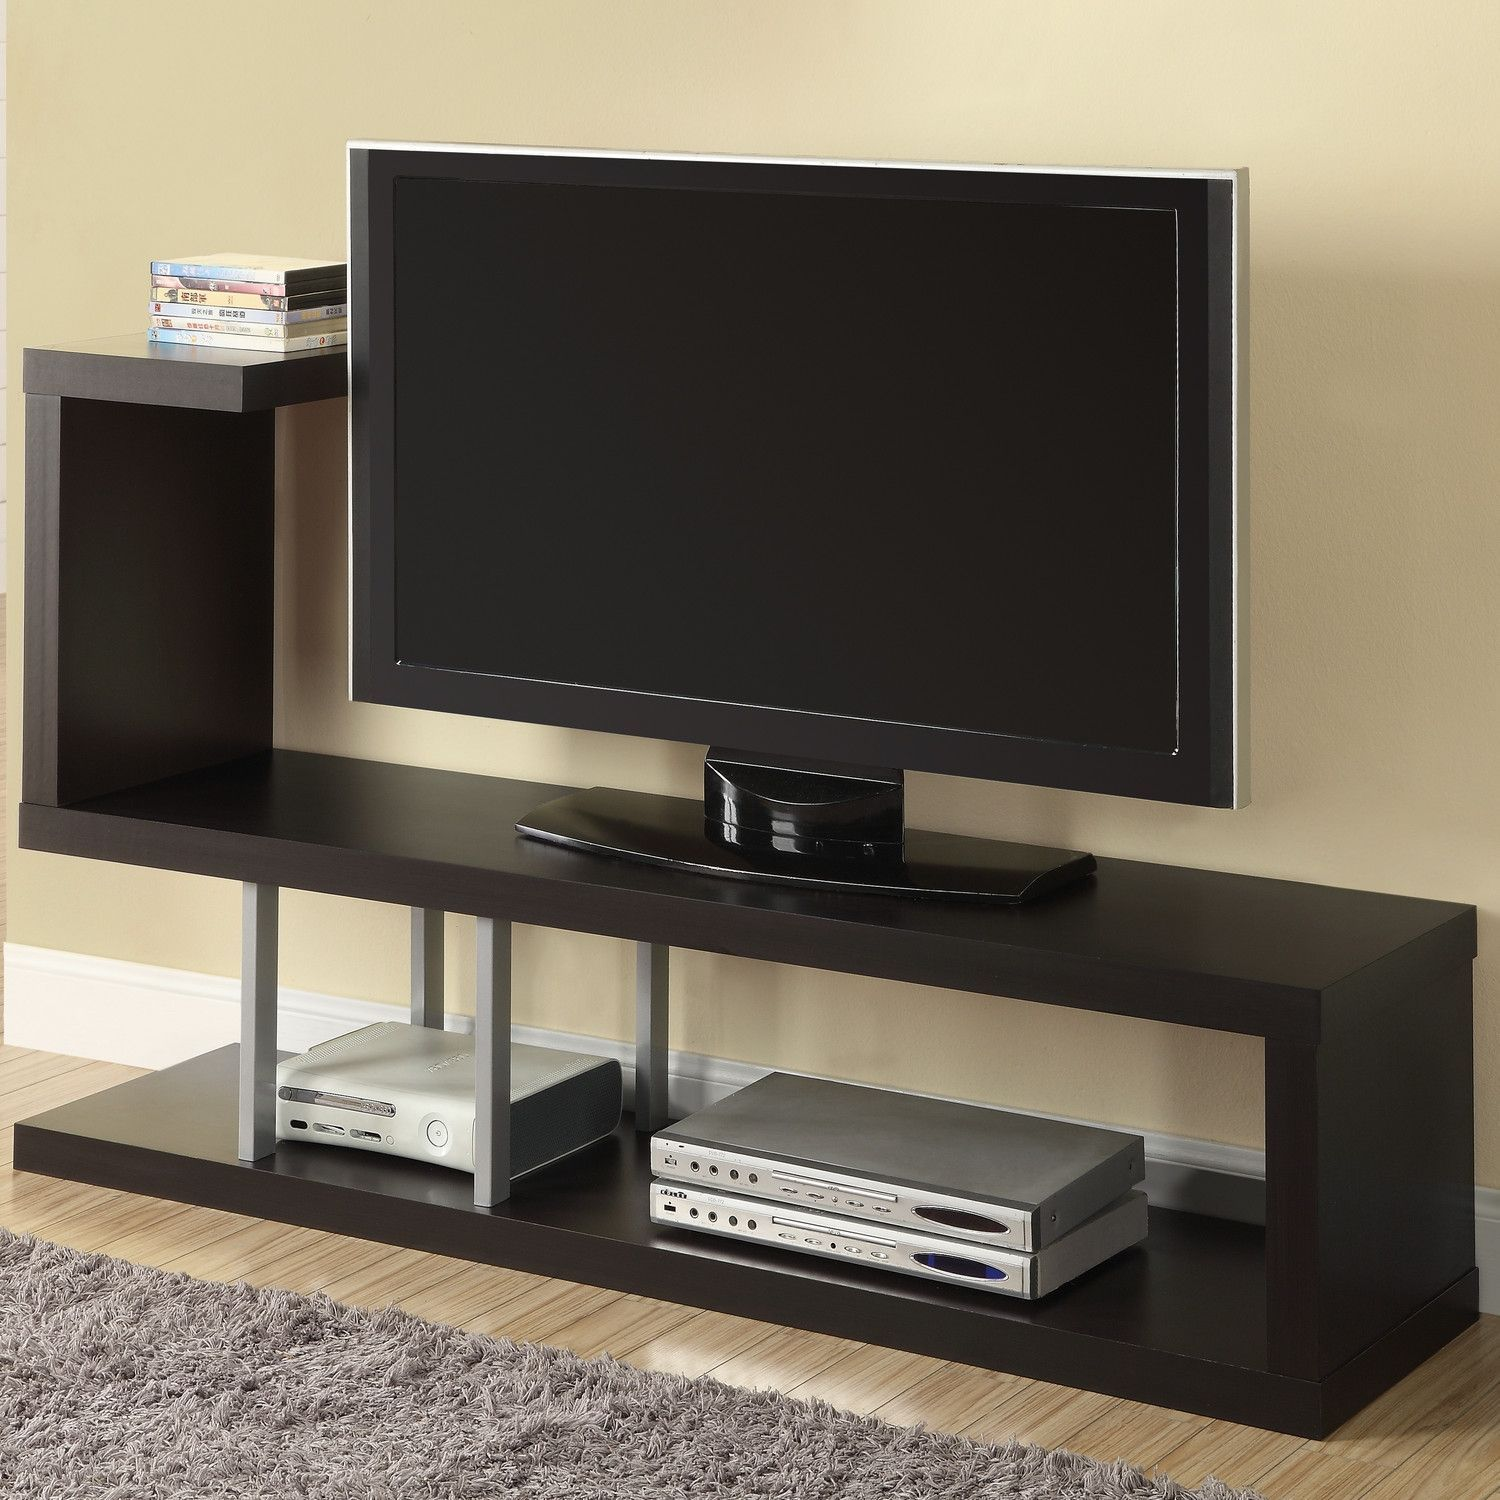 Tv Stand For Small Bedroom